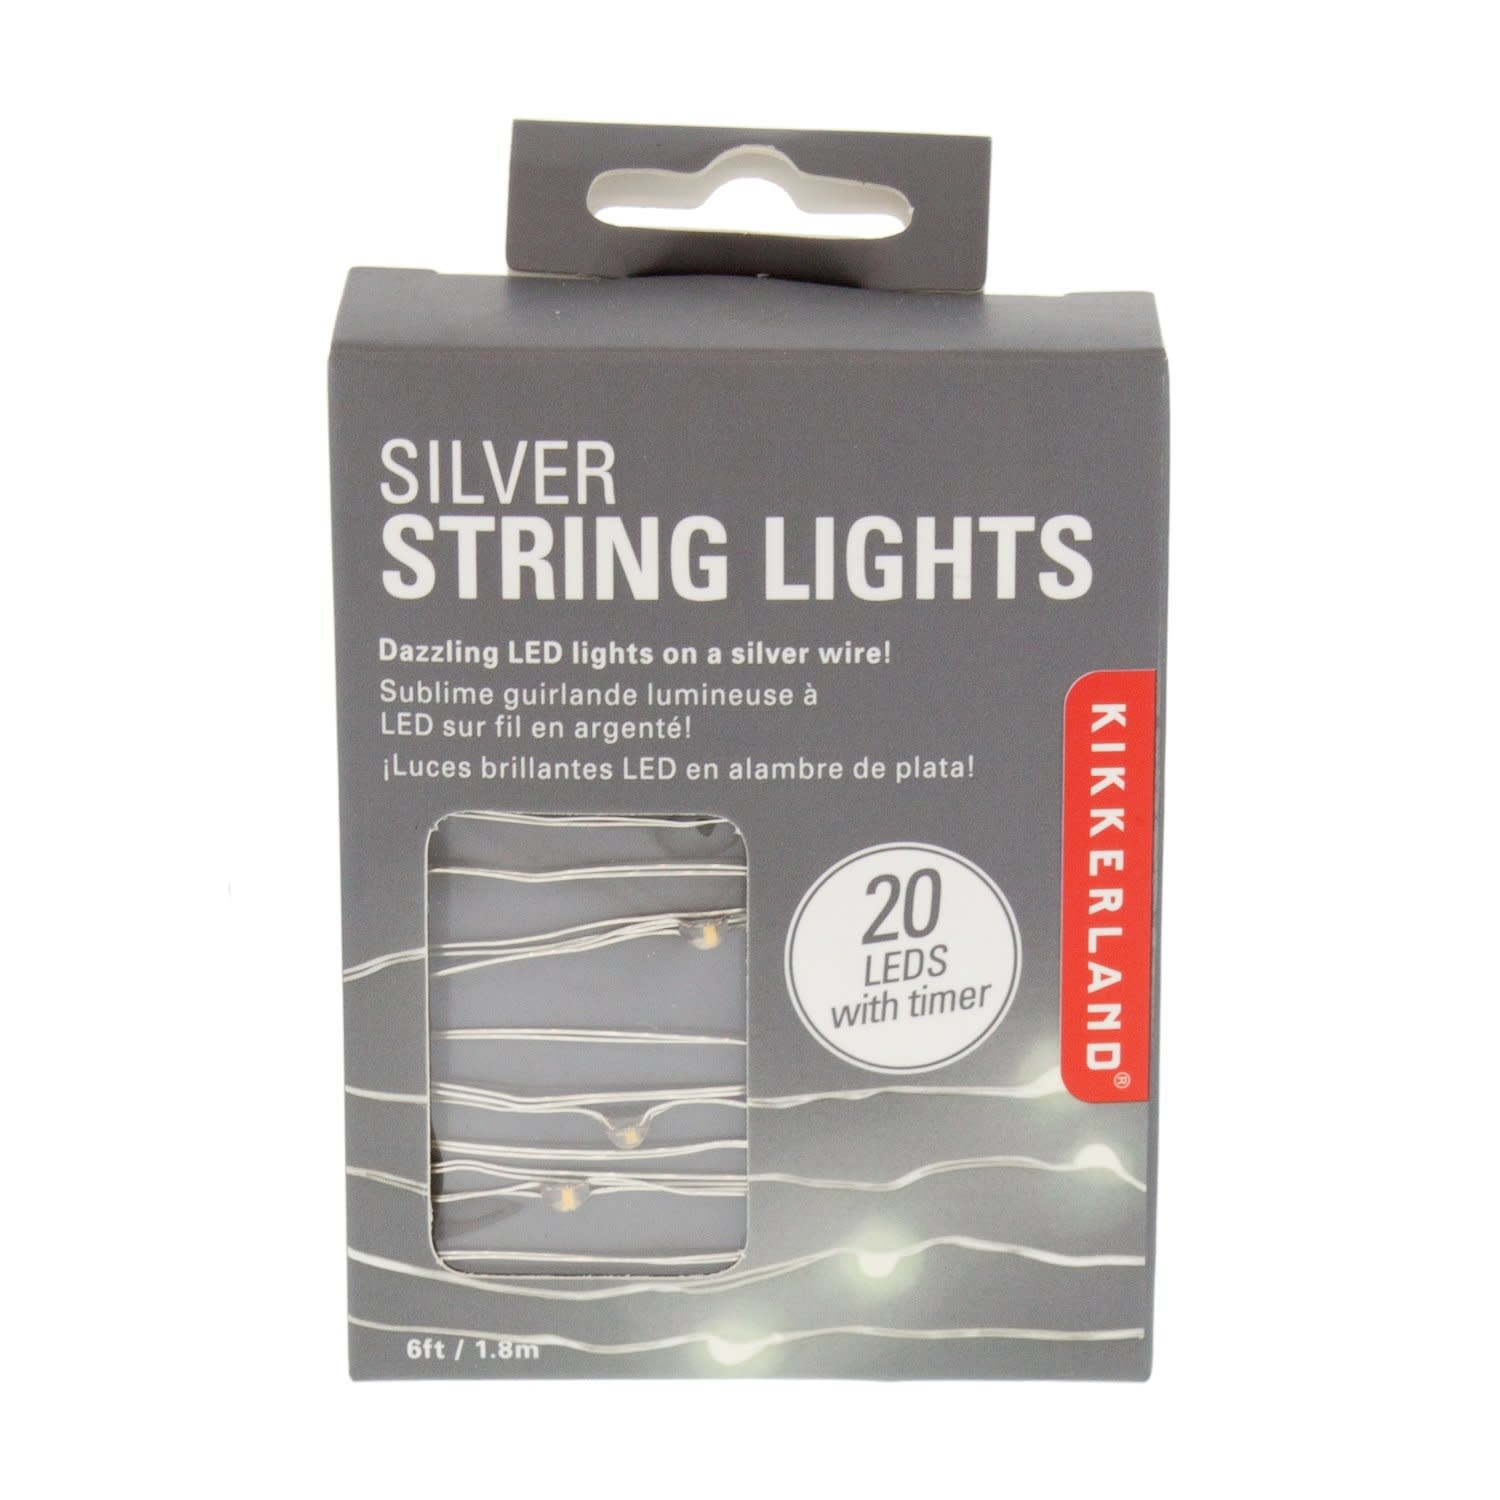 Silver String Lights